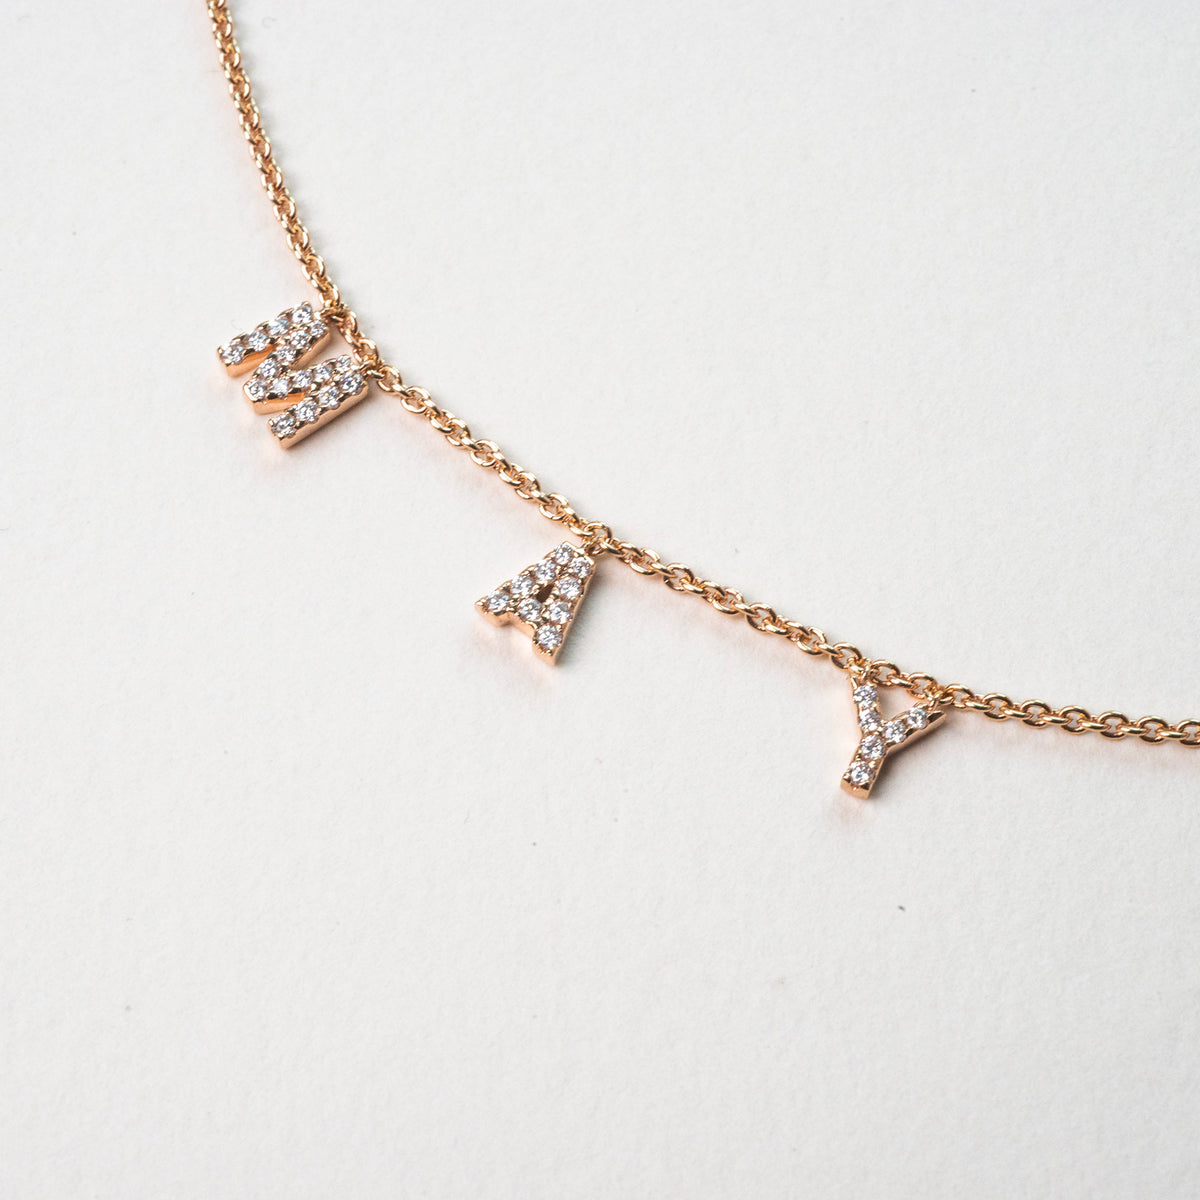 18k Rose Gold Hope Necklace With Diamonds